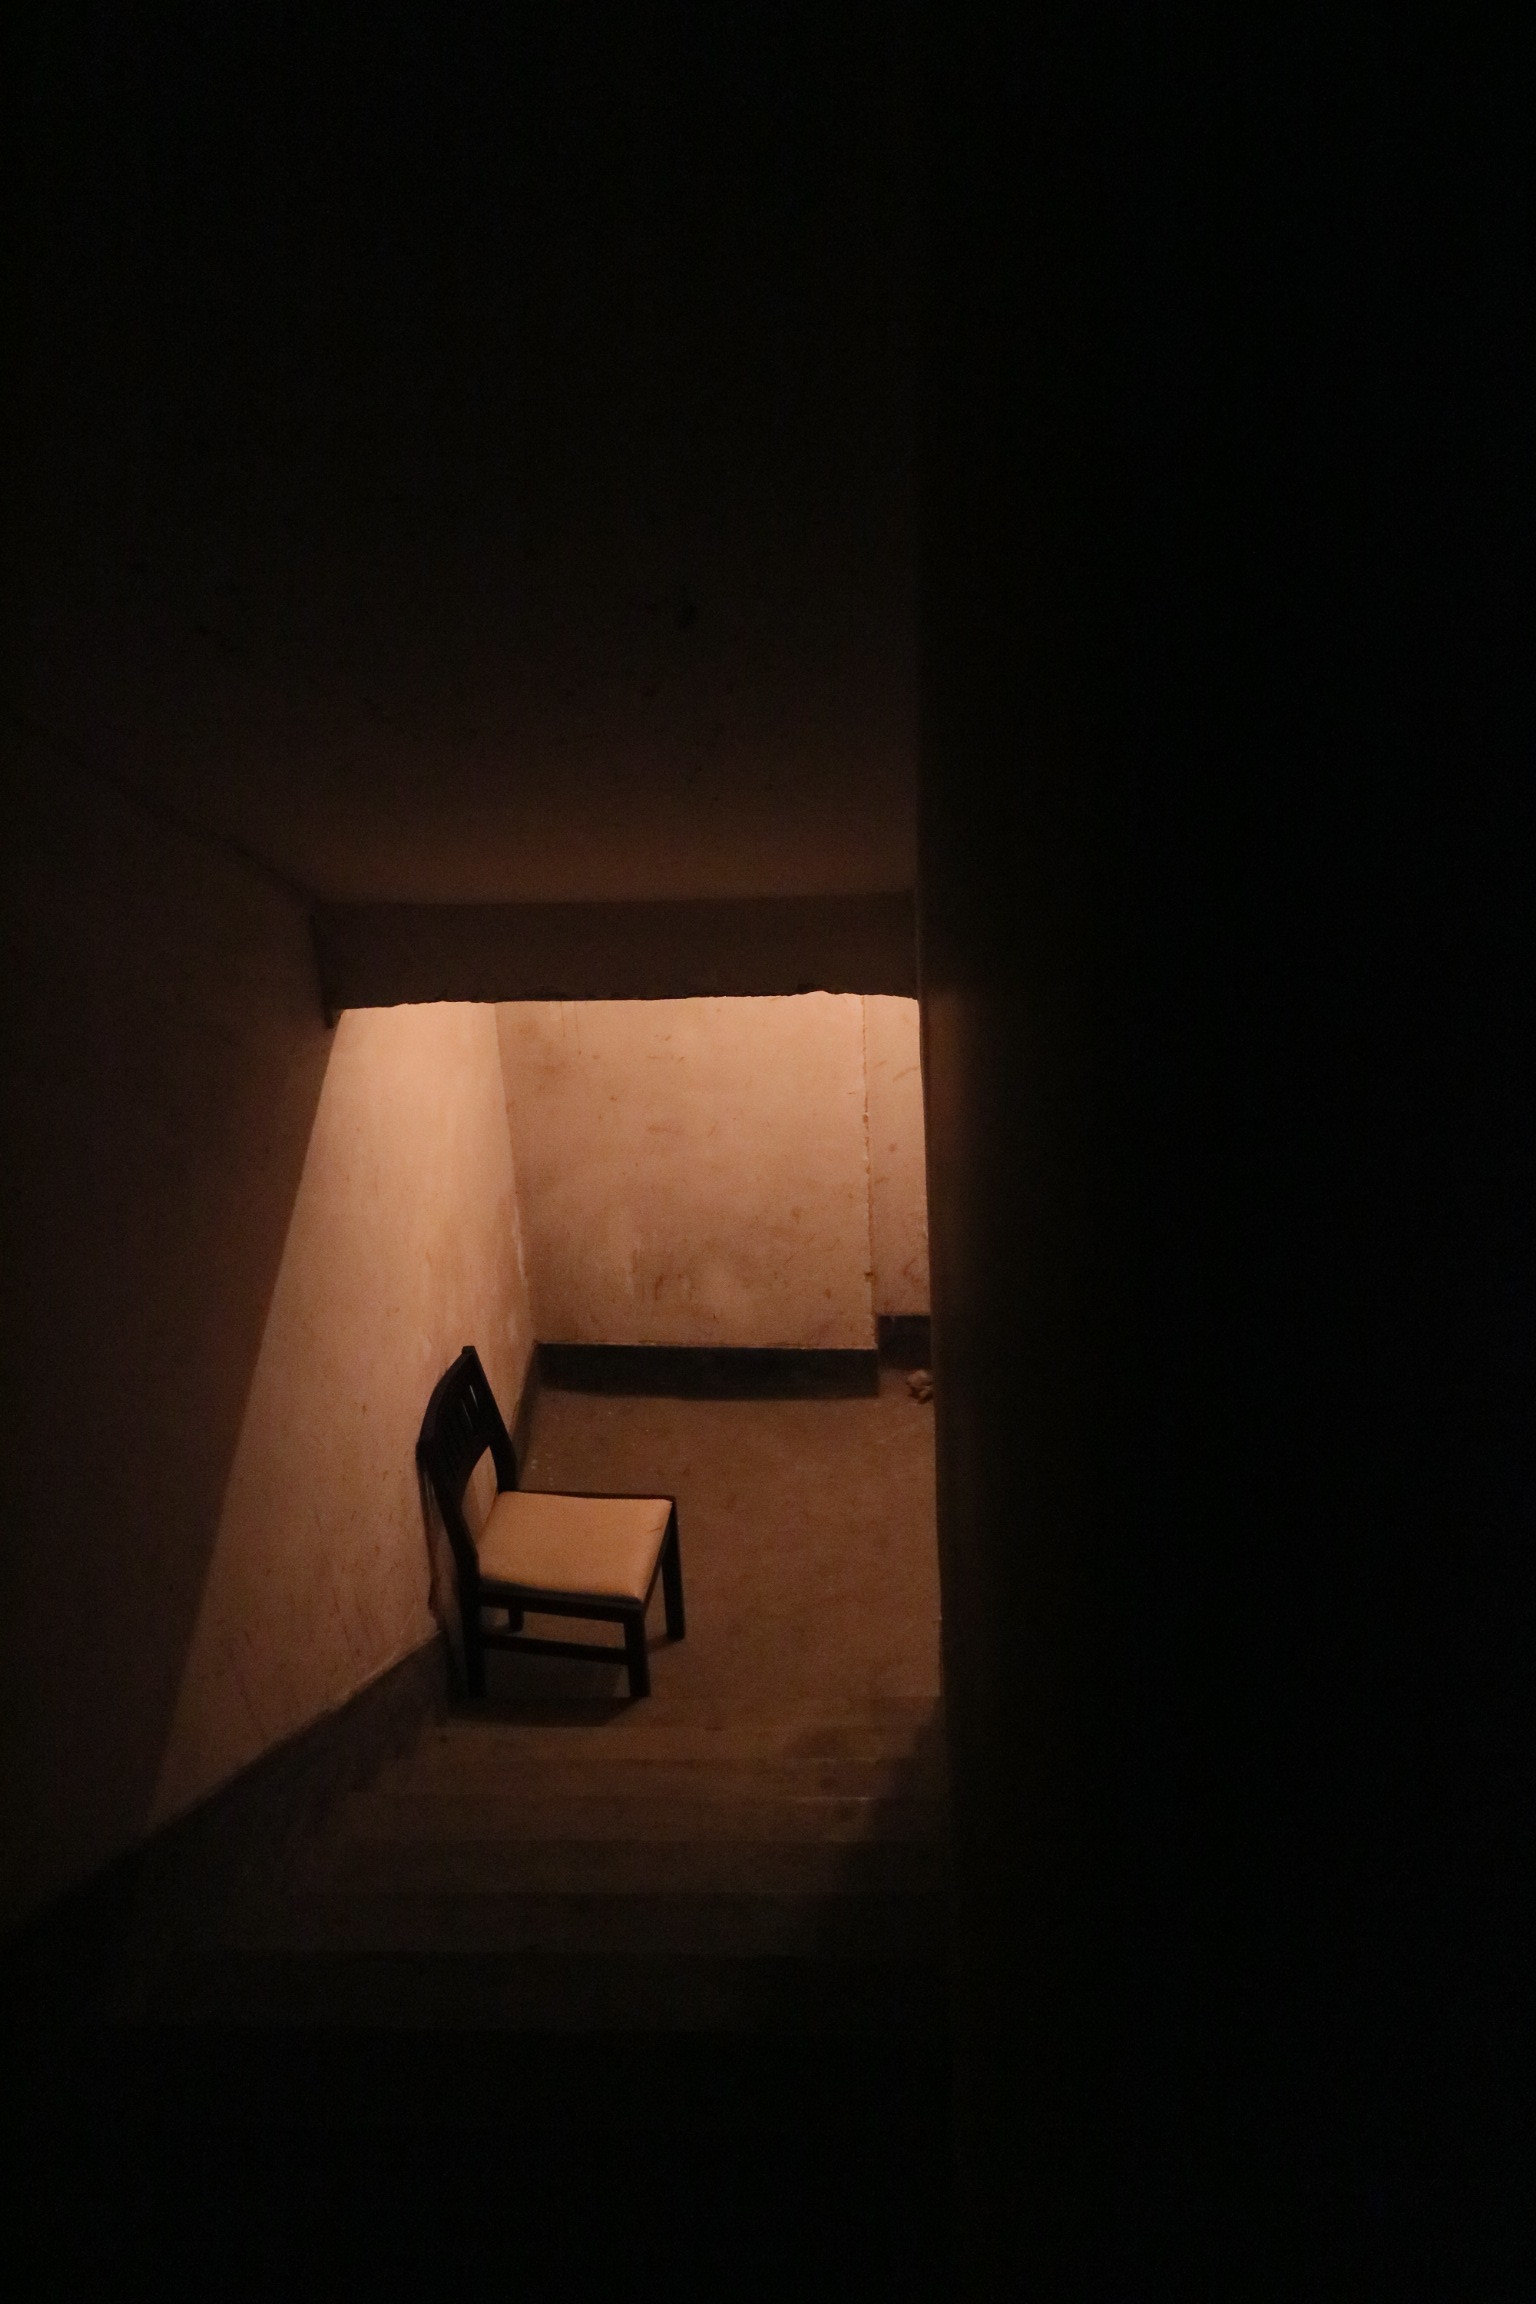 Black and White Wooden Chair Near Stair · Free Stock